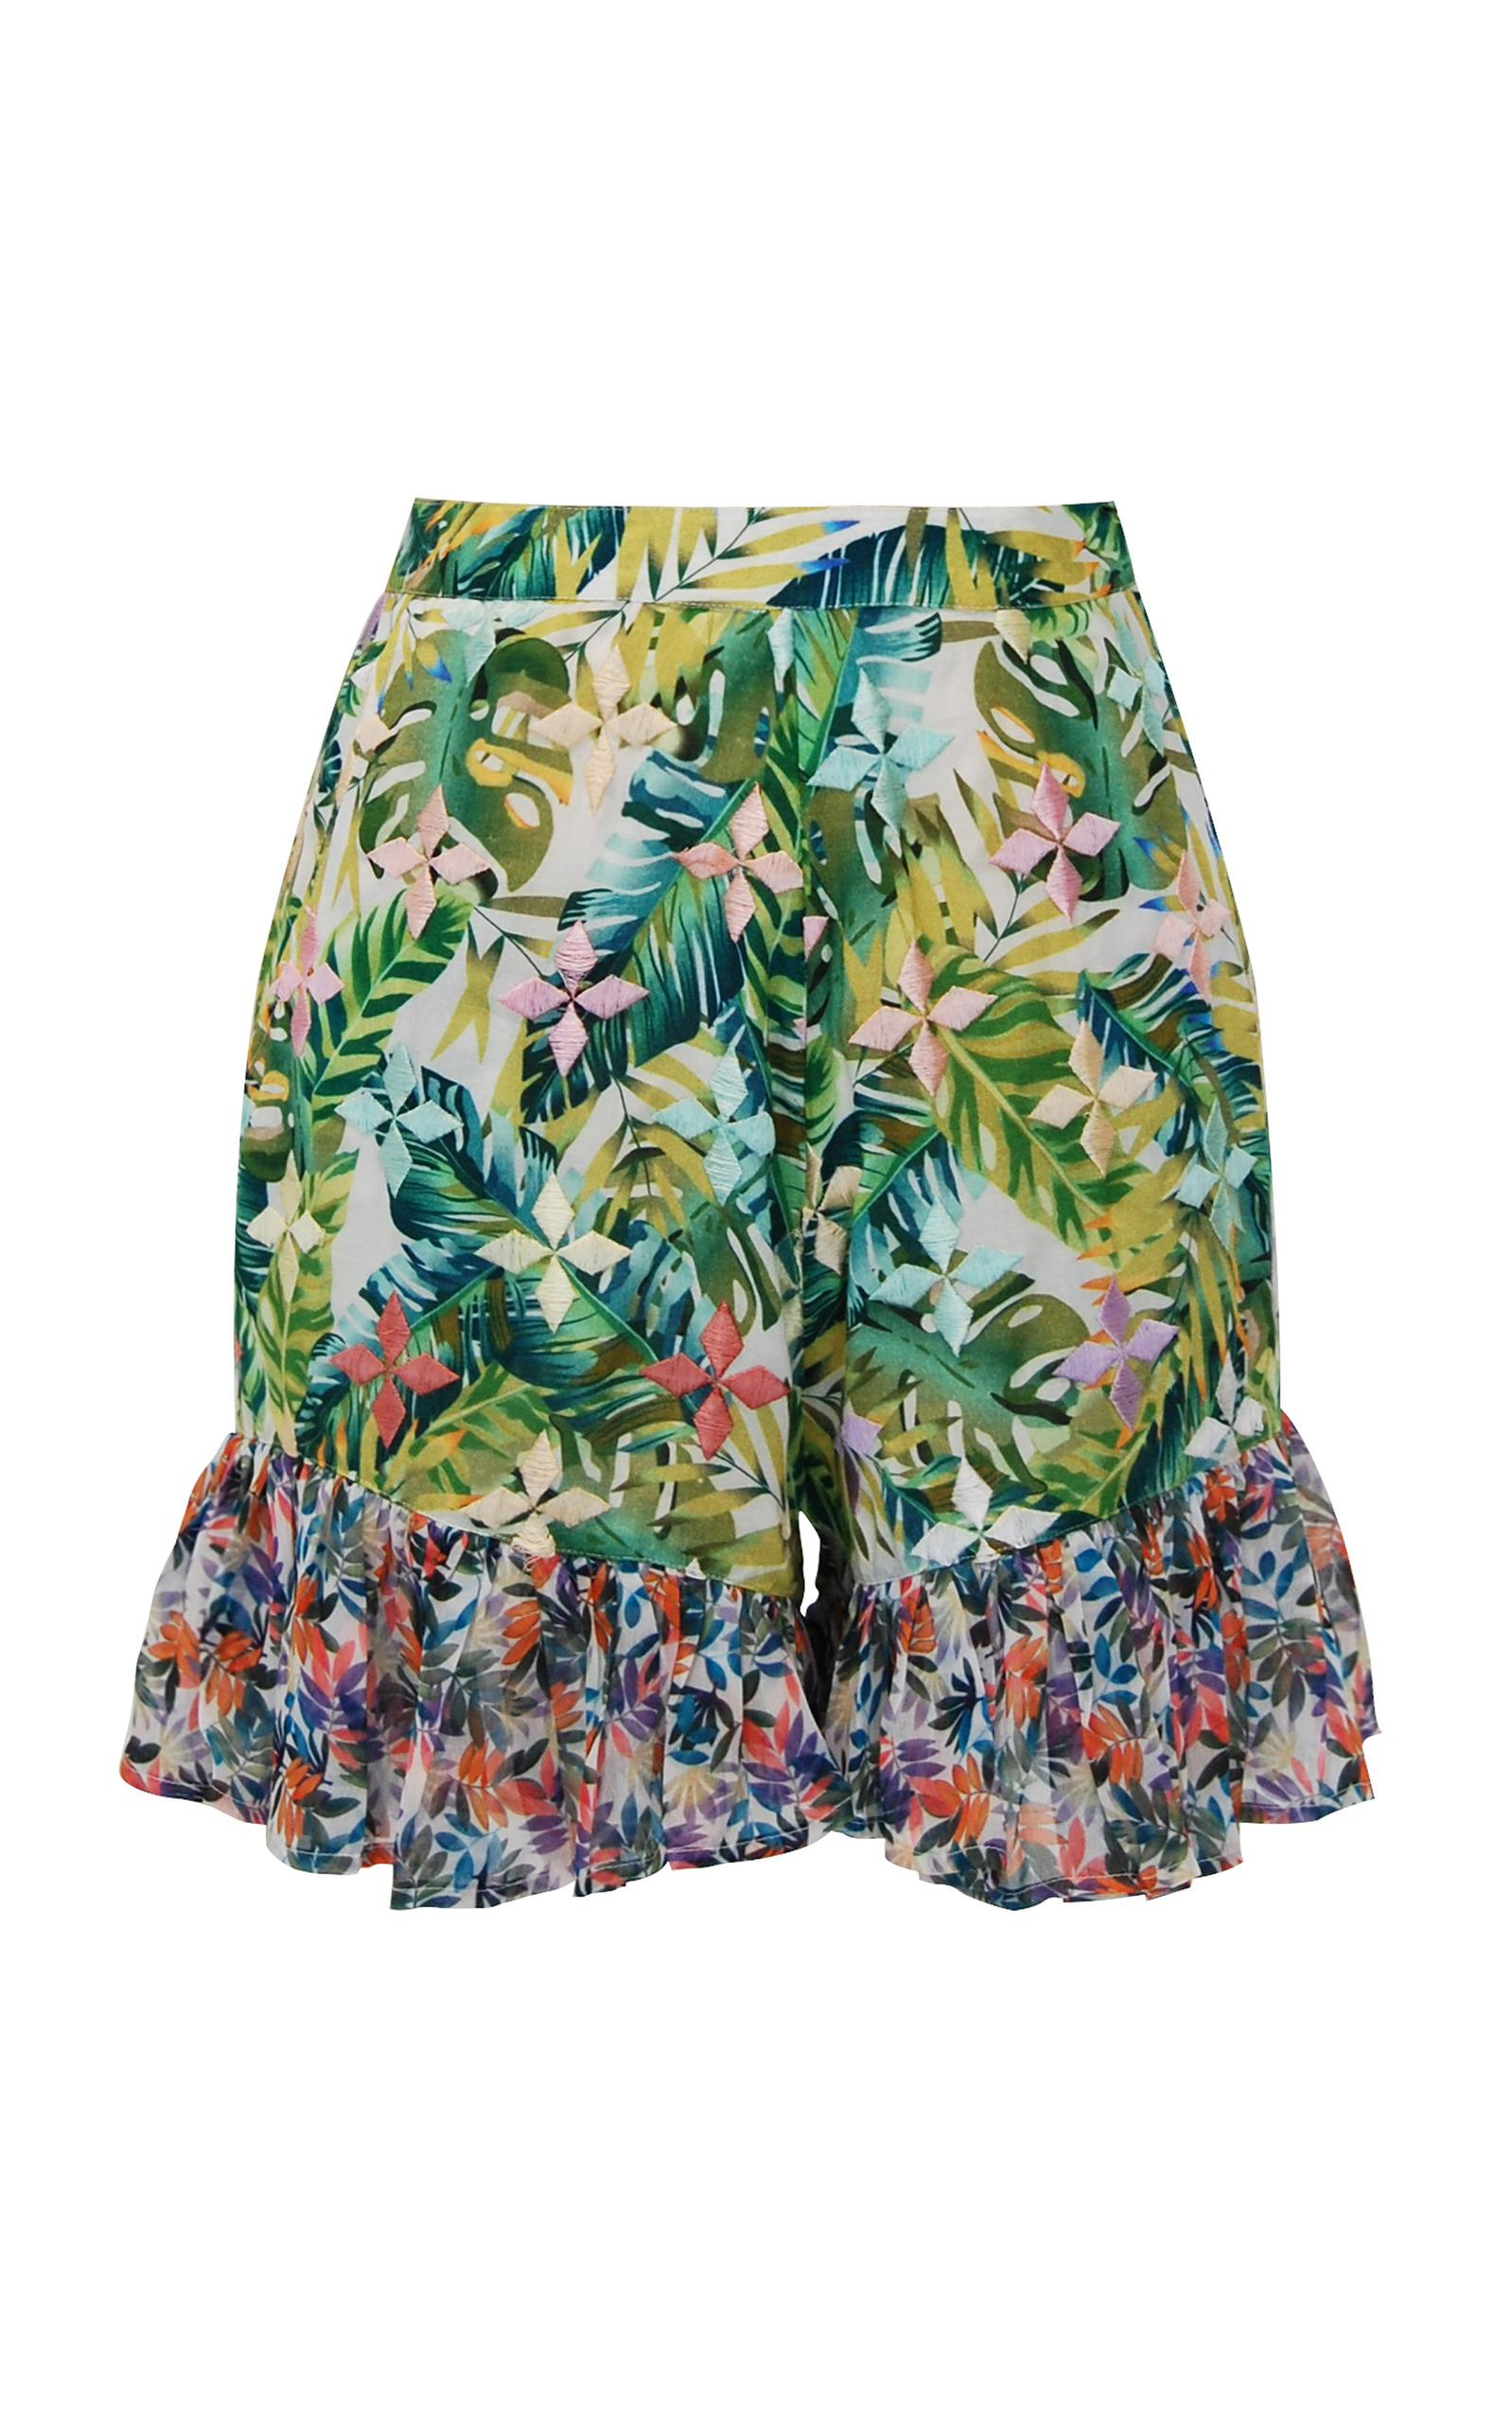 baila tropical print ruffle shorts - Green All Things Mochi Wide Range Of Online Clearance Pictures bSplTm